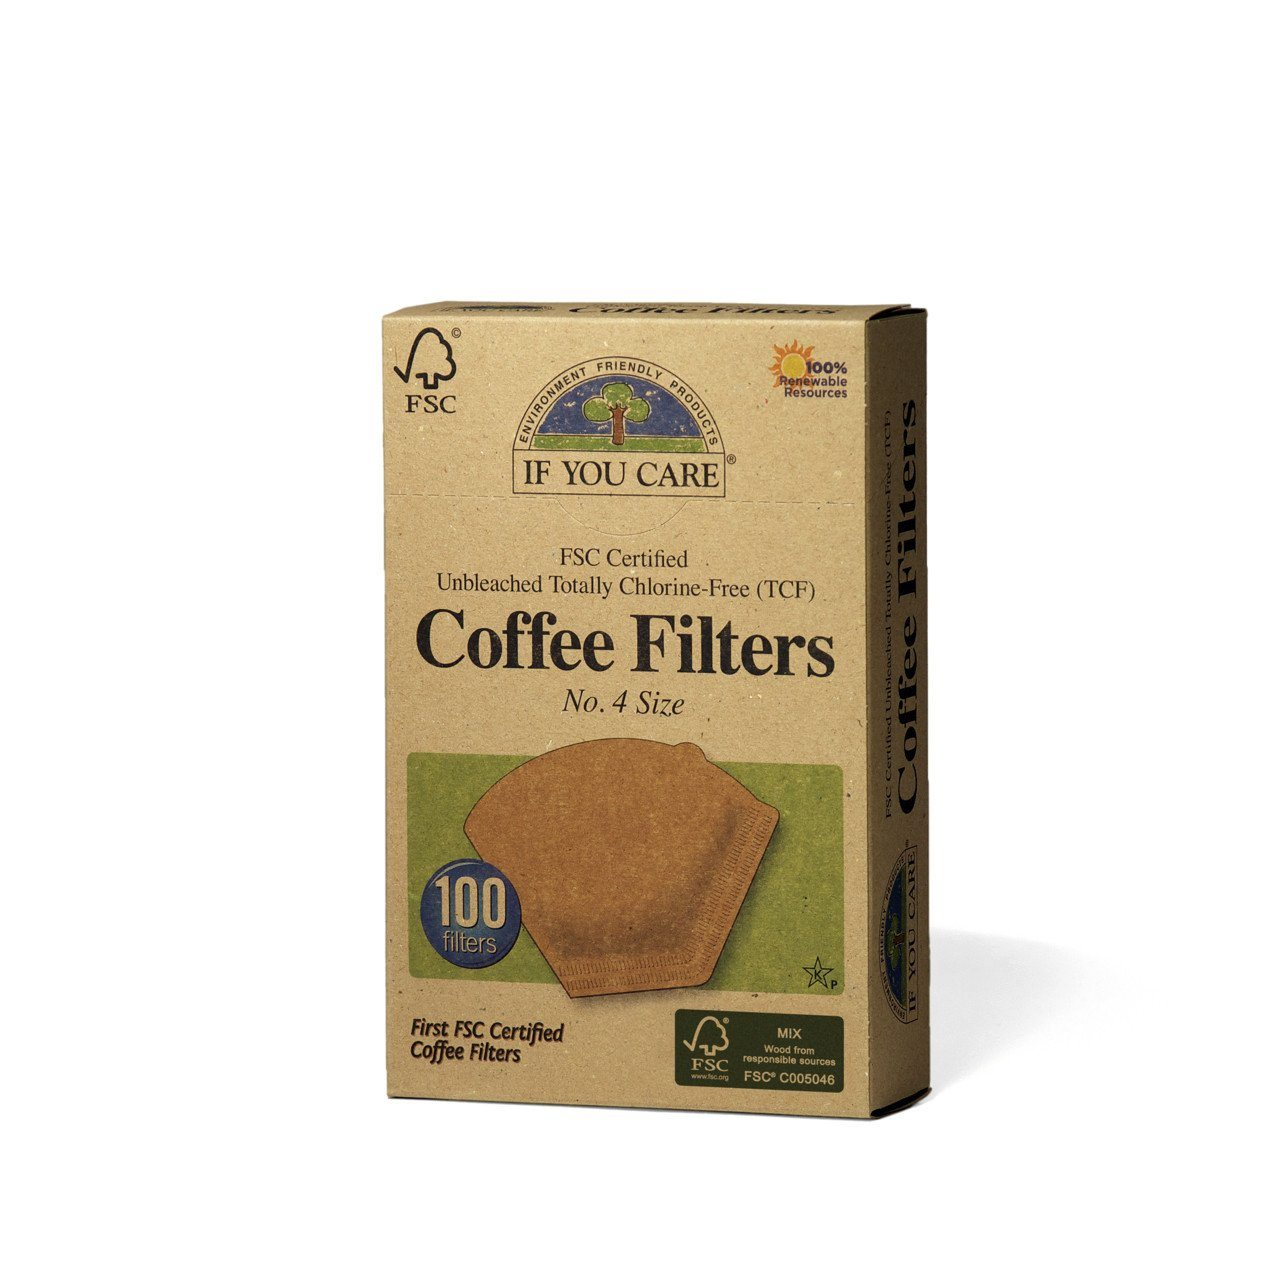 Healthy Lifestyles - If You Care - Enviro Friendly - Coffee Filters - No. 4